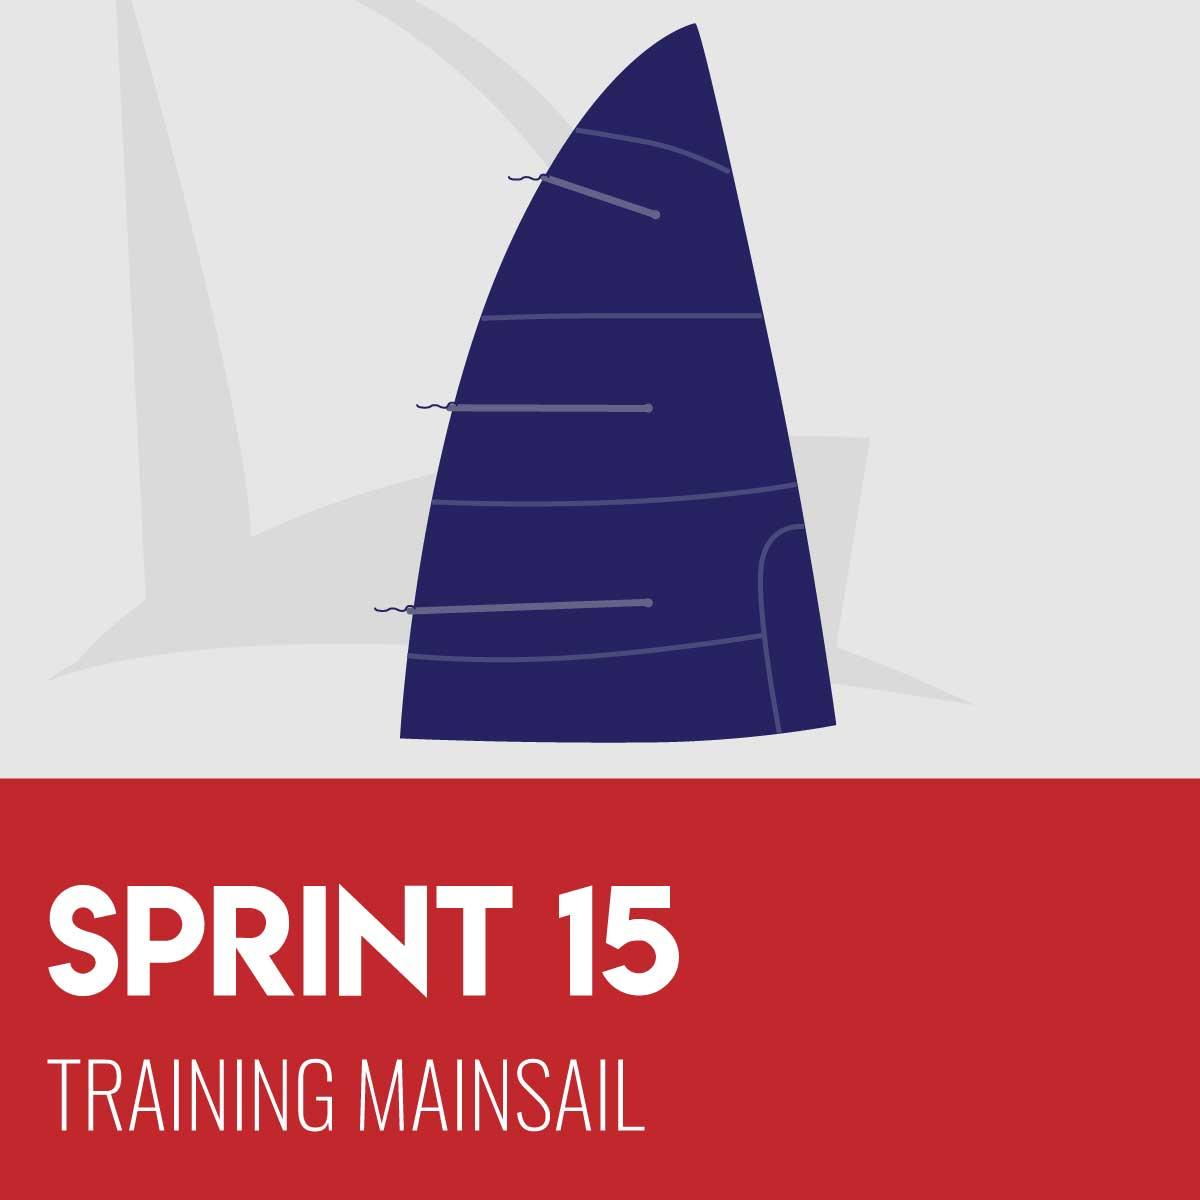 Sprint 15 Training Mainsail